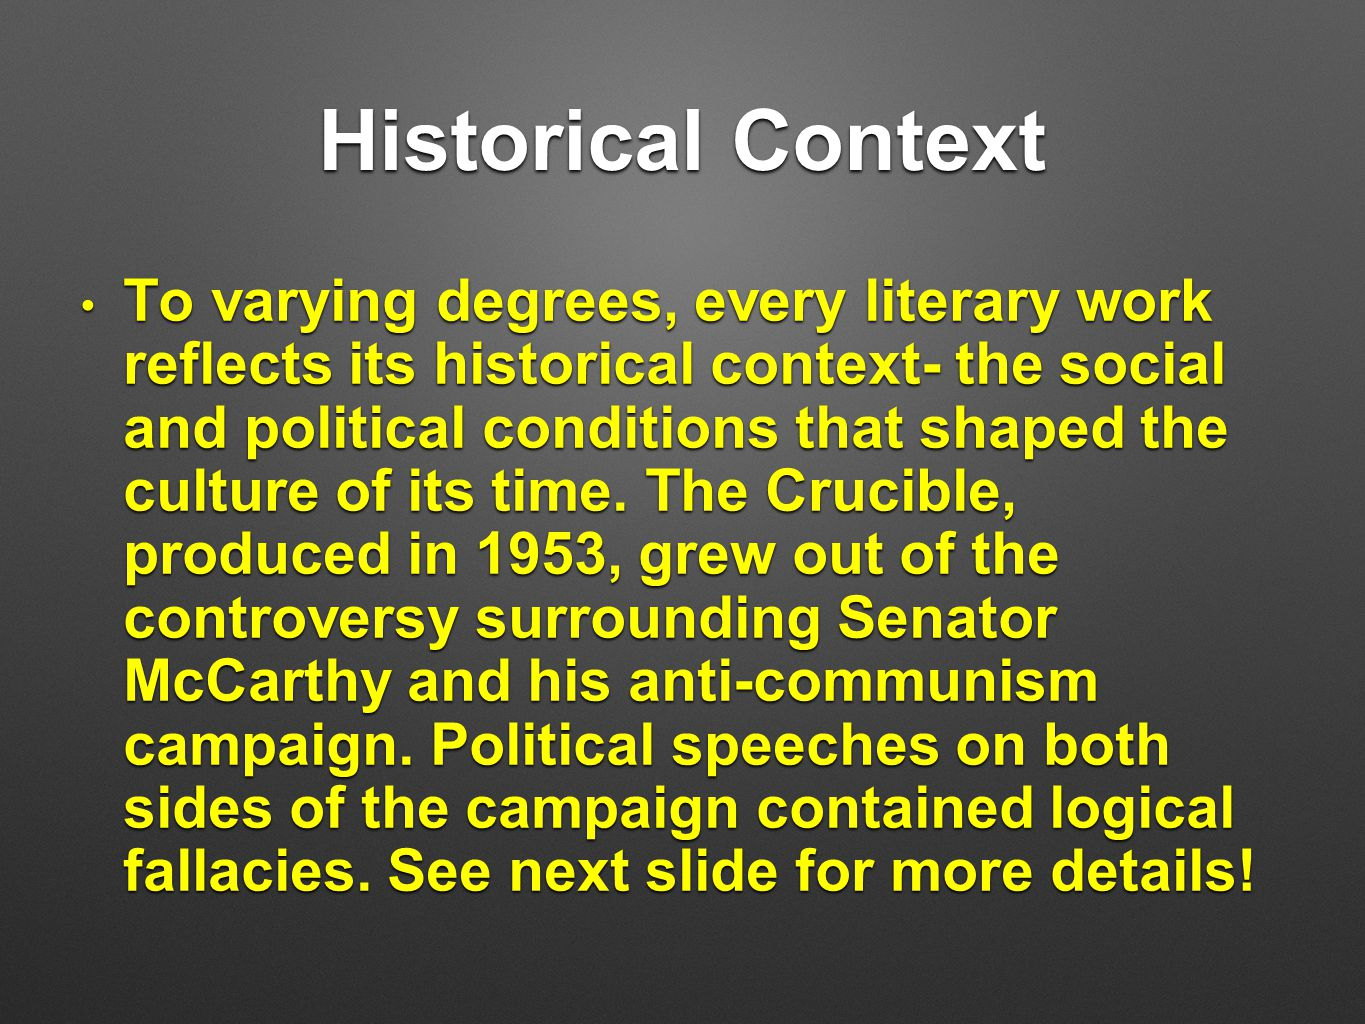 mccarthyism in the crucible 1984